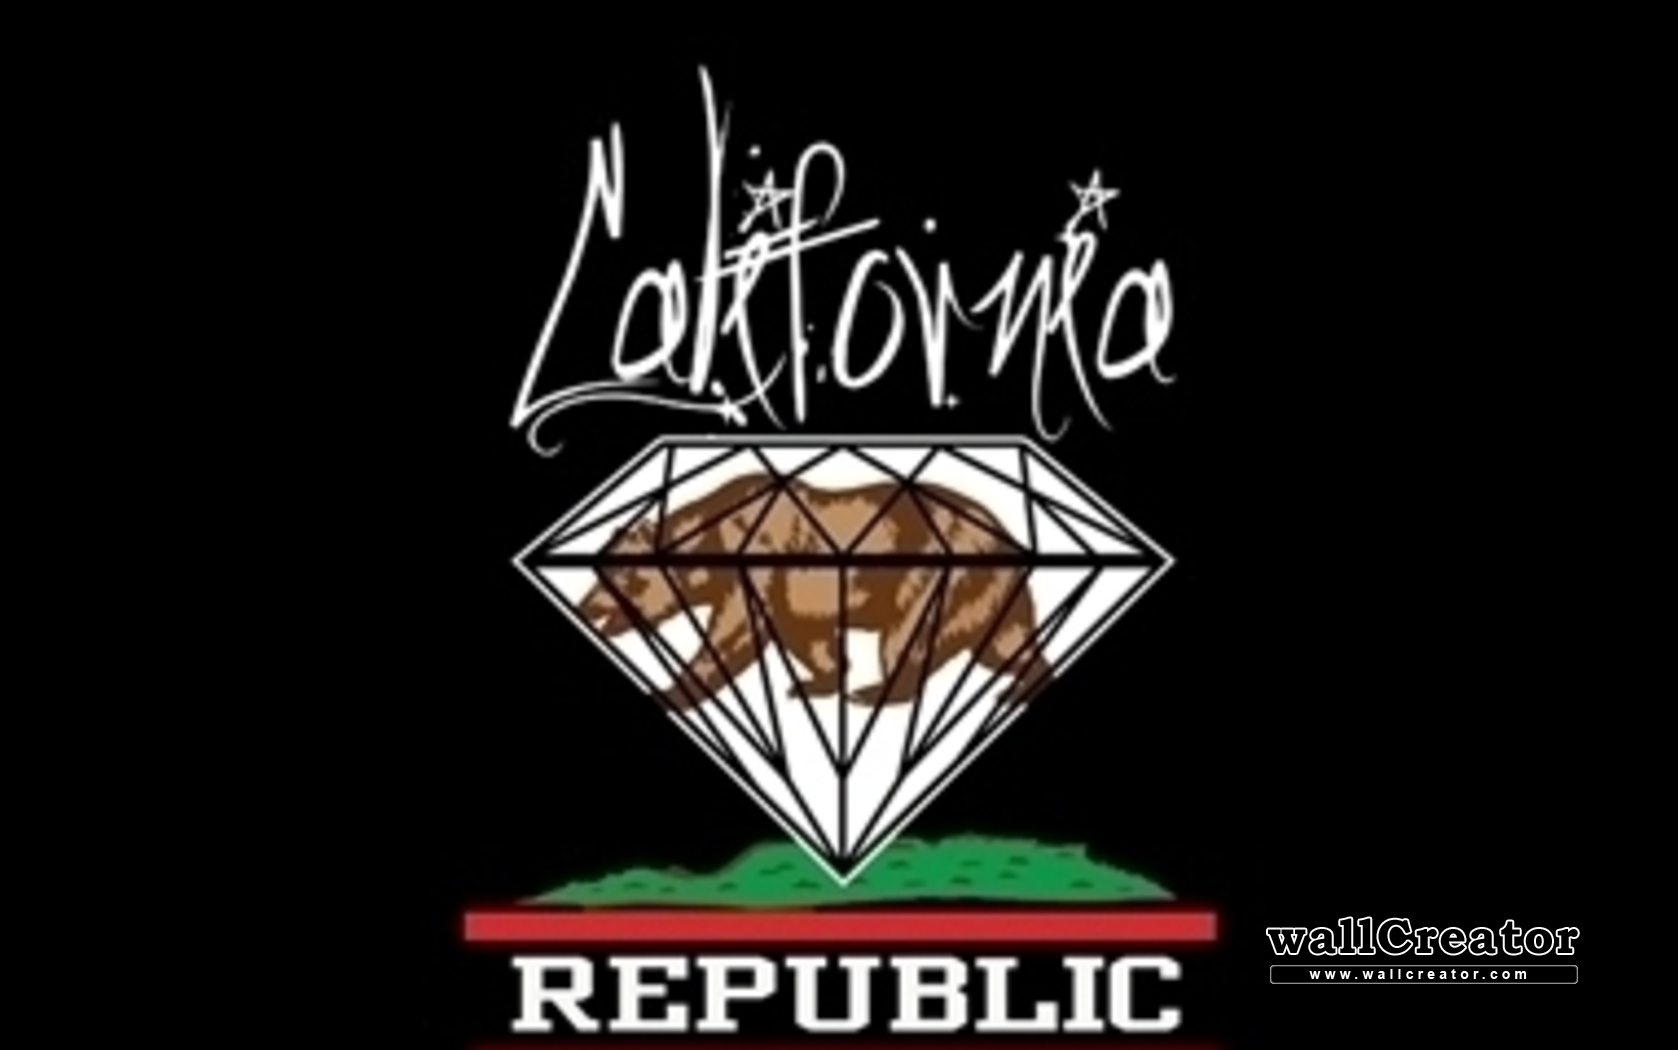 Diamond supply wallpaper for iphone wallpapersafari diamond wallpaper for iphone 1678x1050 voltagebd Choice Image